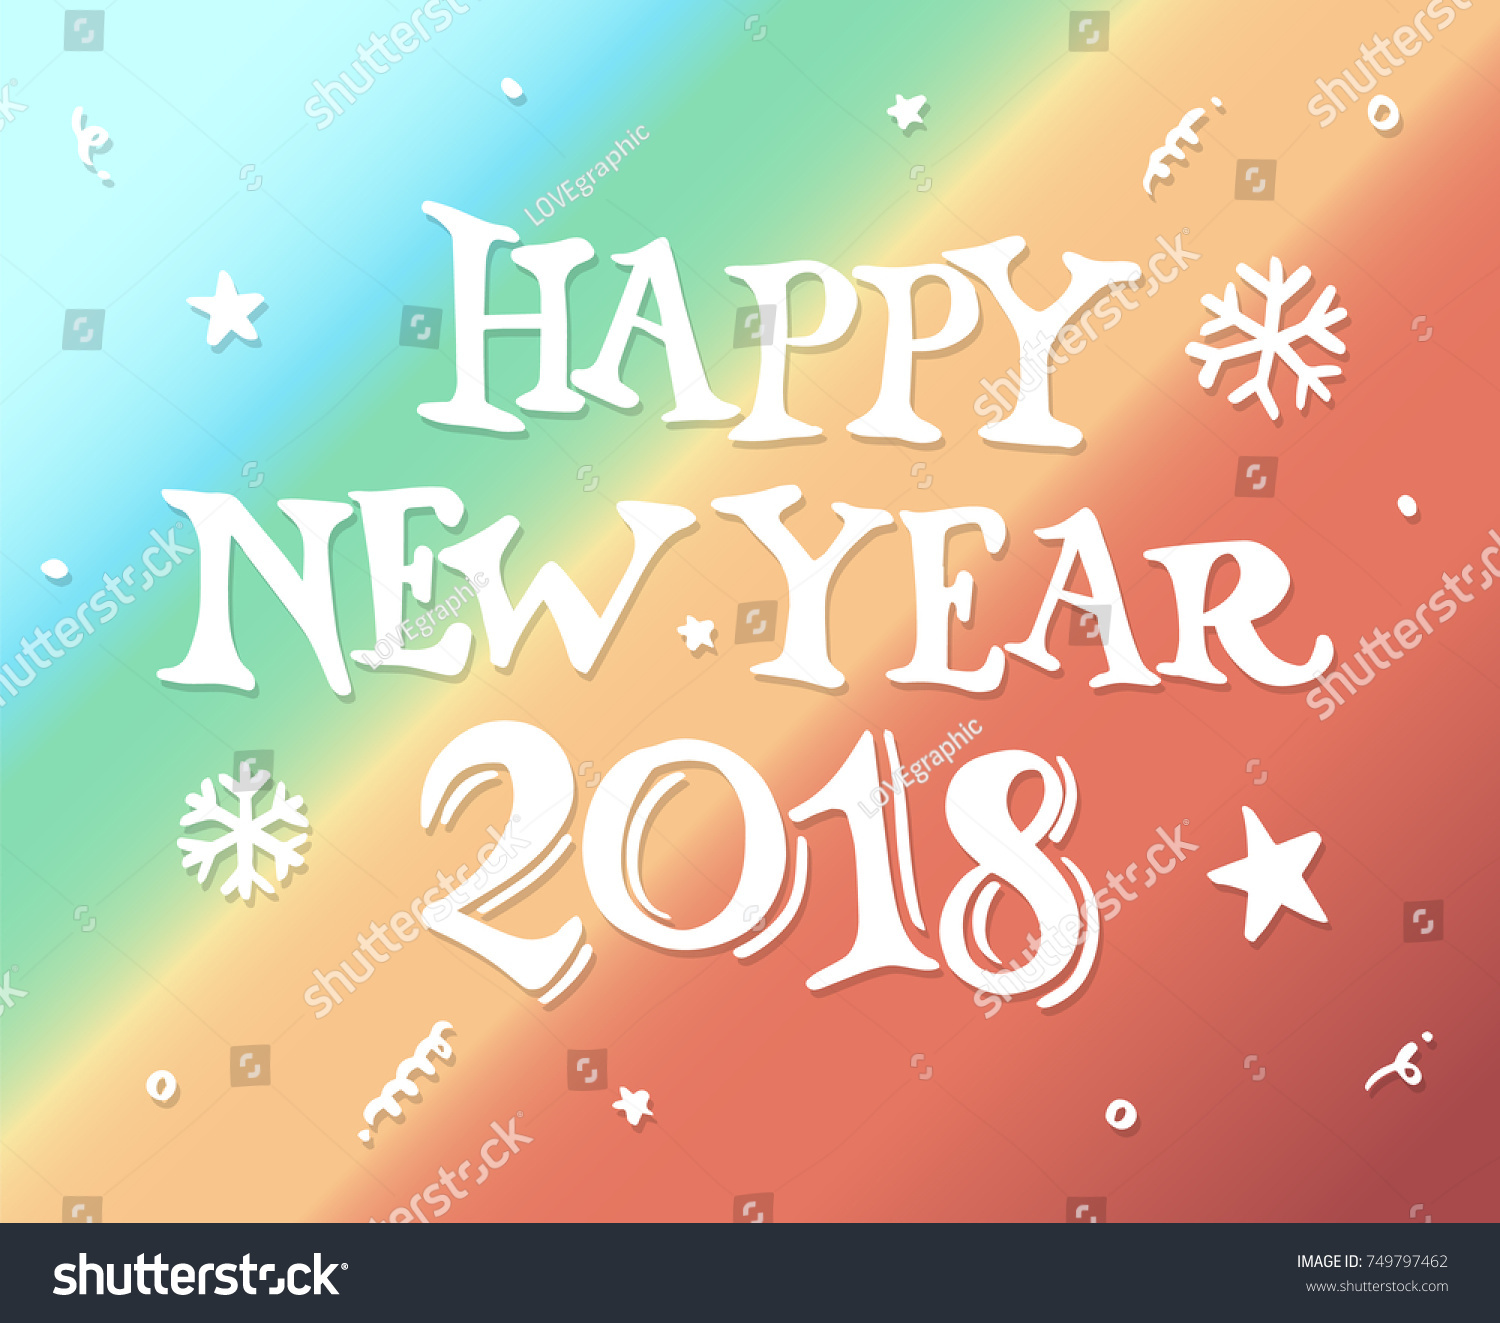 Happy new year 2018 drawn style stock vector royalty free happy new year 2018 drawn style for new year greeting card and poster element vector m4hsunfo